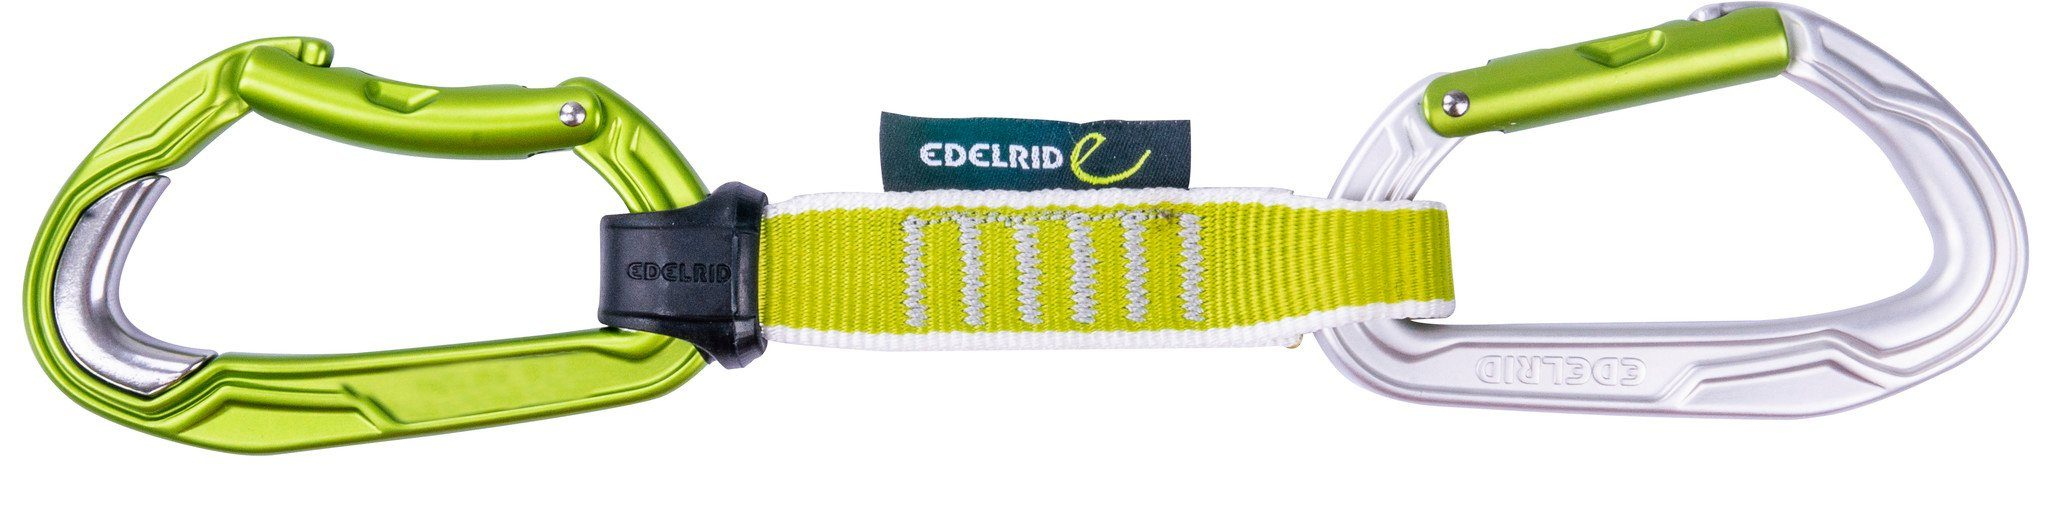 Edelrid Express-Set »Bulletproof Quickdraw Set 12cm«